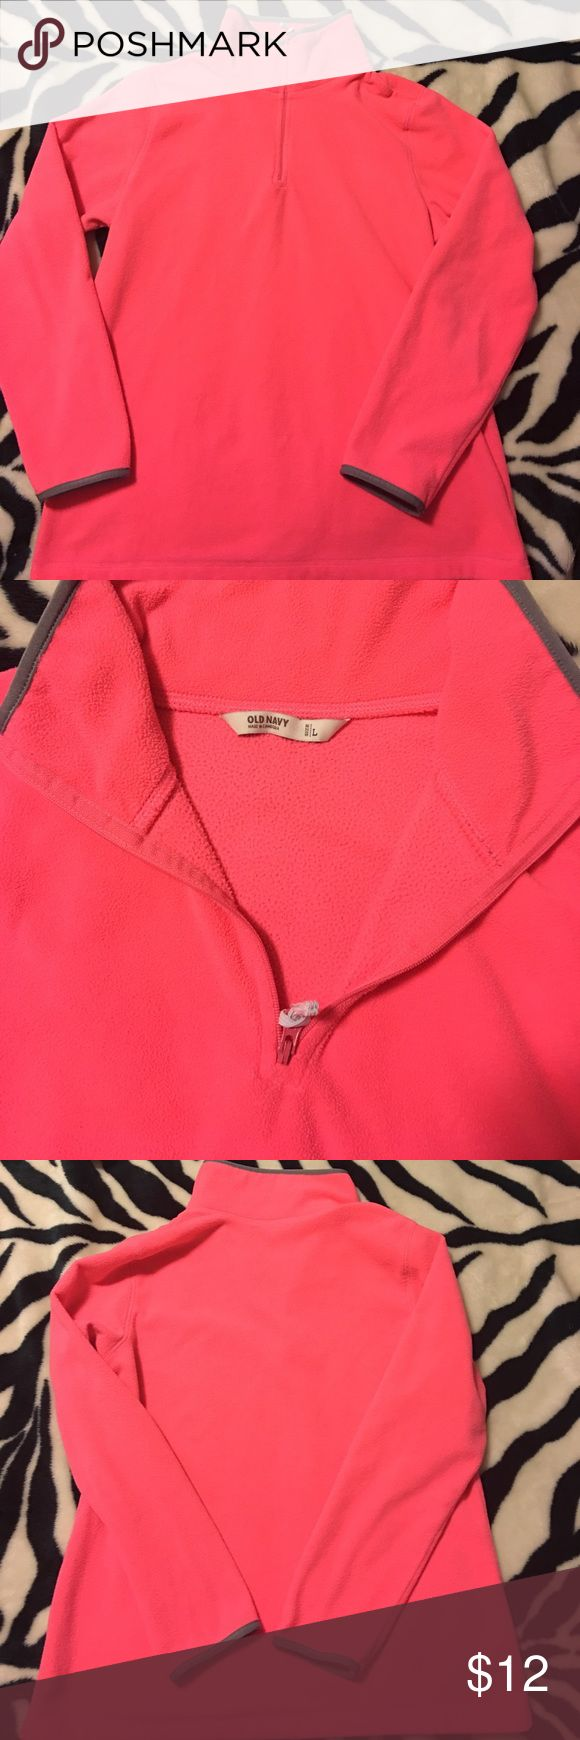 🔥PRICE DROPPED ⬇️HOT PINK sweatshirt💕 This is a VERY hot pink old navy sweatshirt. Has Little gray trim around the collar and sleeves. Zips up the neck very comfortable and still has a lot  of color. Hadn't been worn much at all... Old Navy Tops Sweatshirts & Hoodies